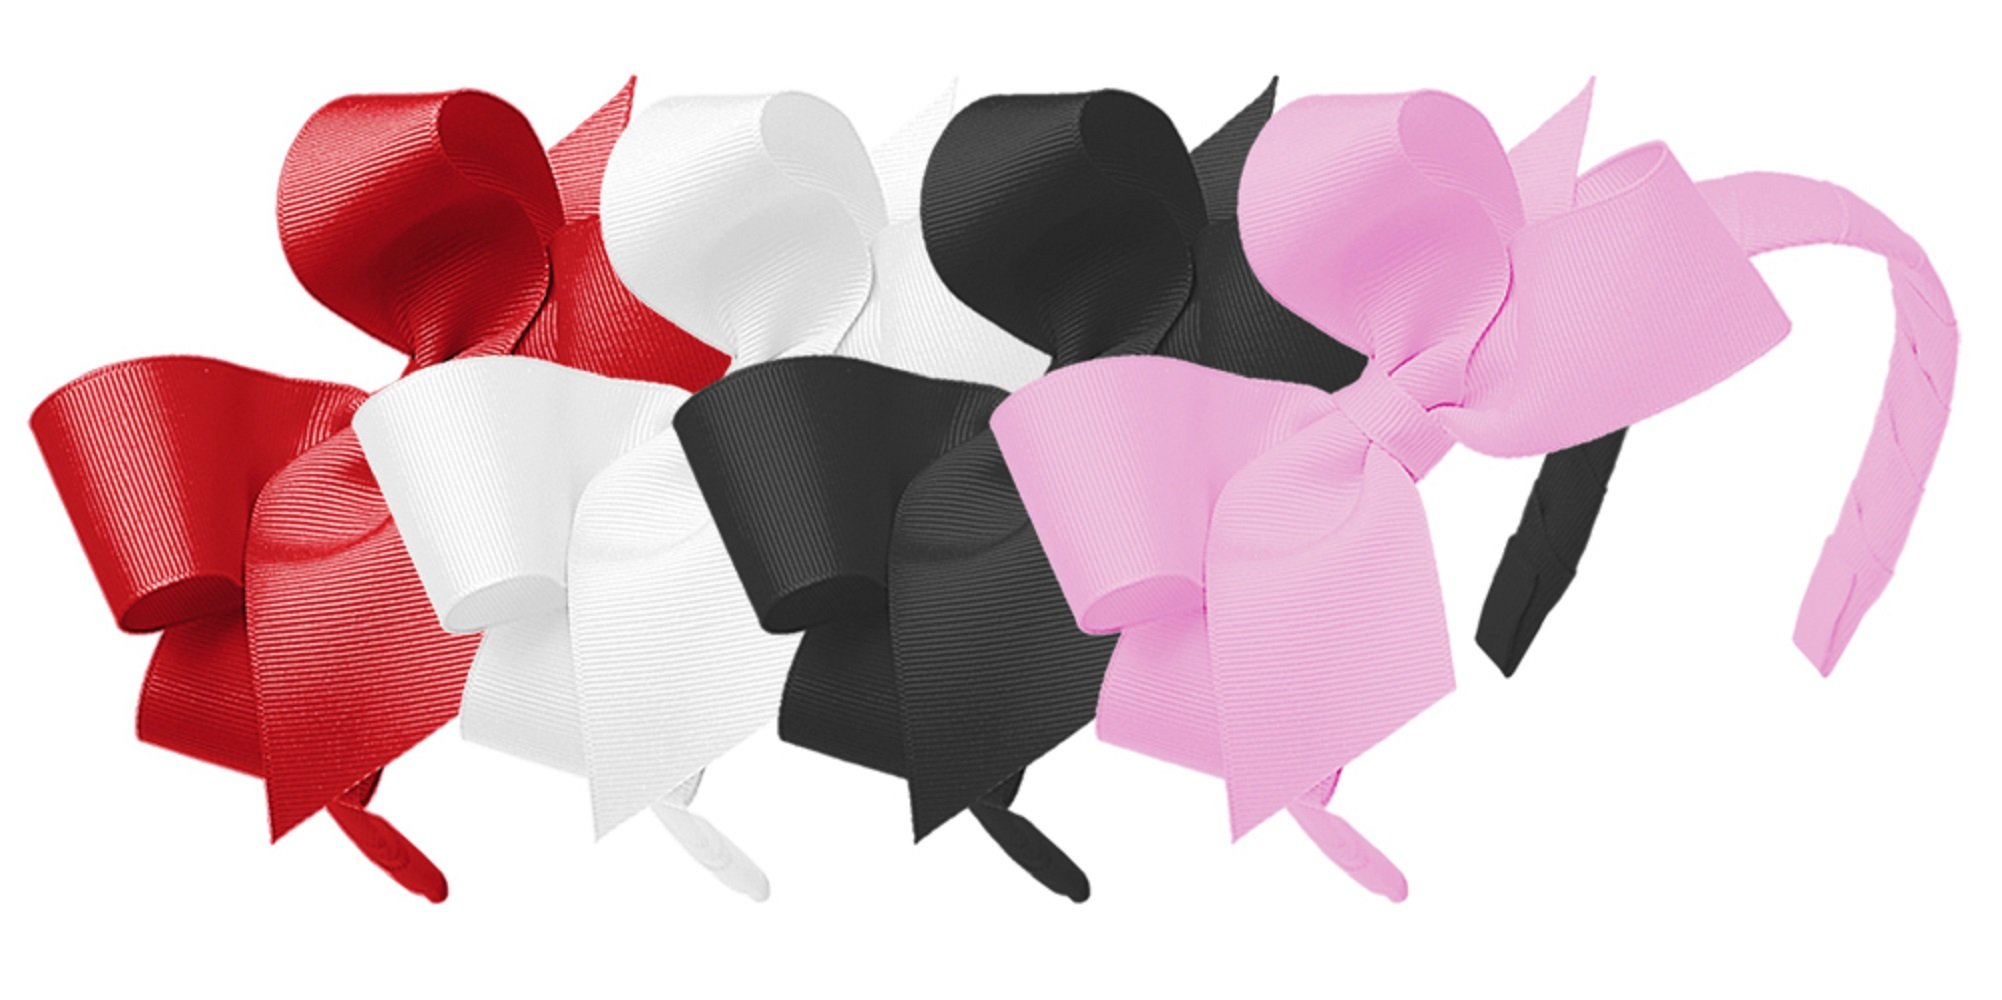 Wee Ones Girls' Classic Grosgrain Headband with Medium Bow 4pc Set Solid Variety Pack - Red, White, Black and Pearl by Wee Ones